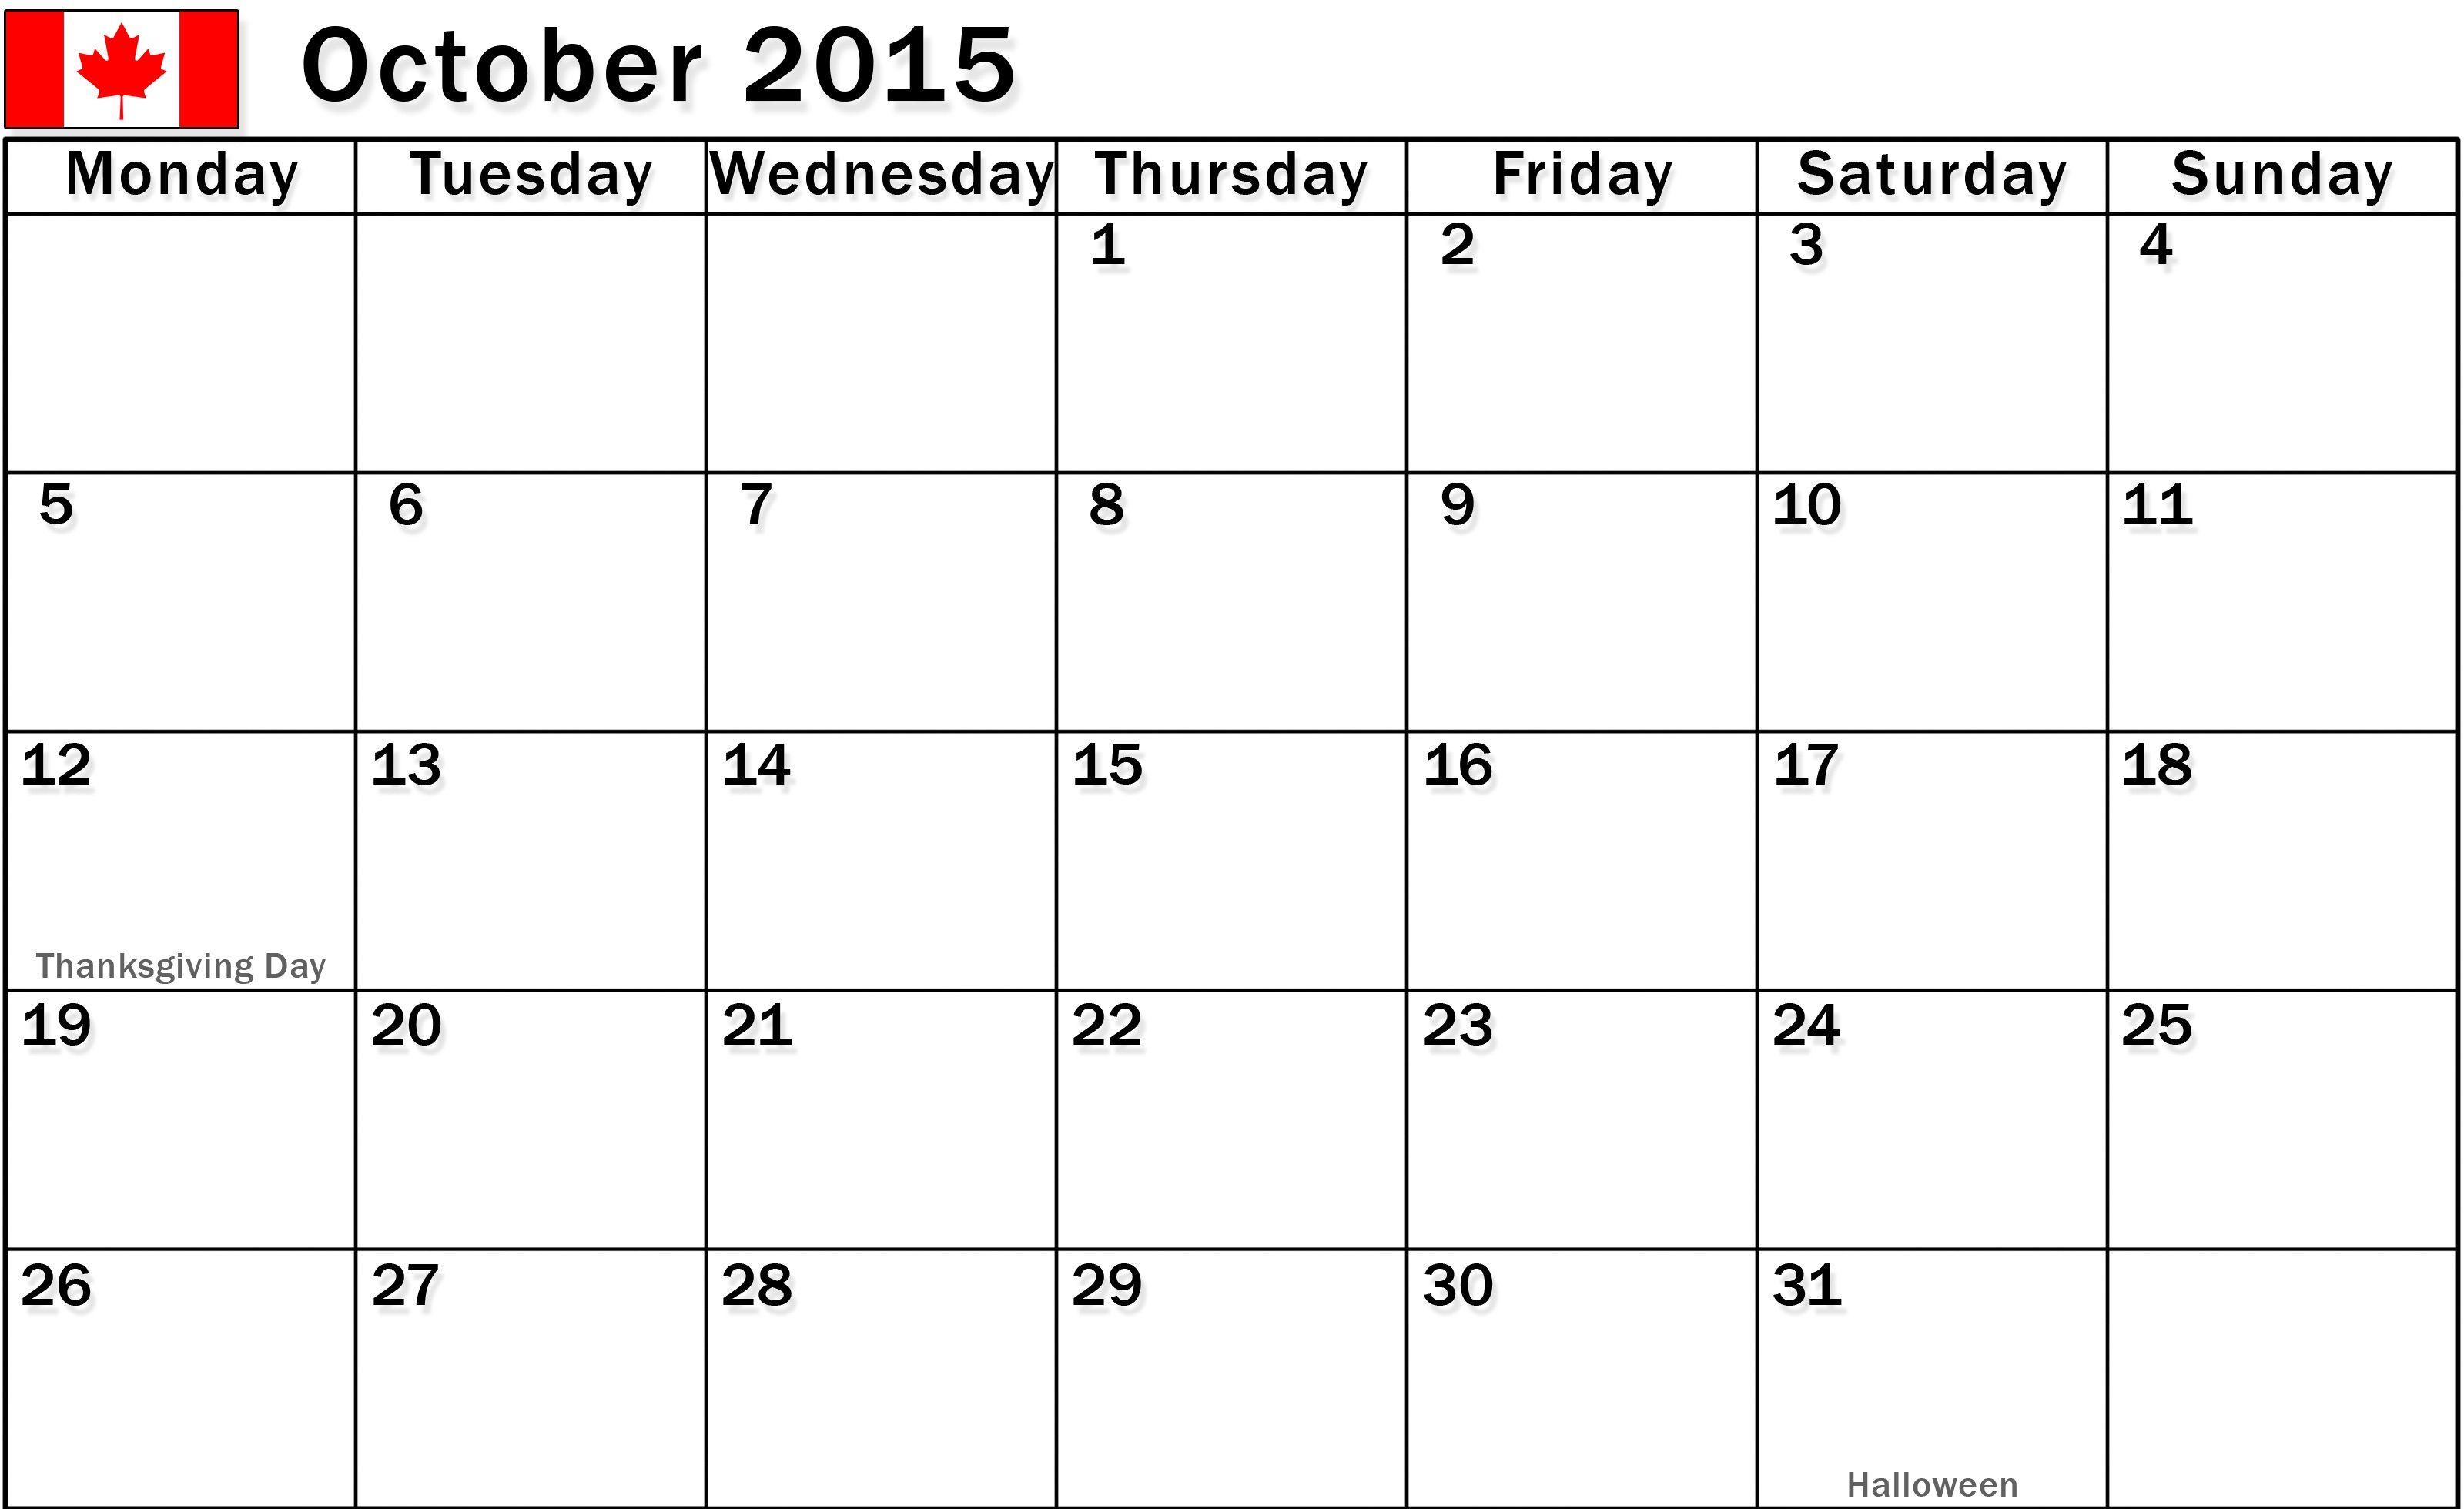 free download october 2015 calendar canada pictures images